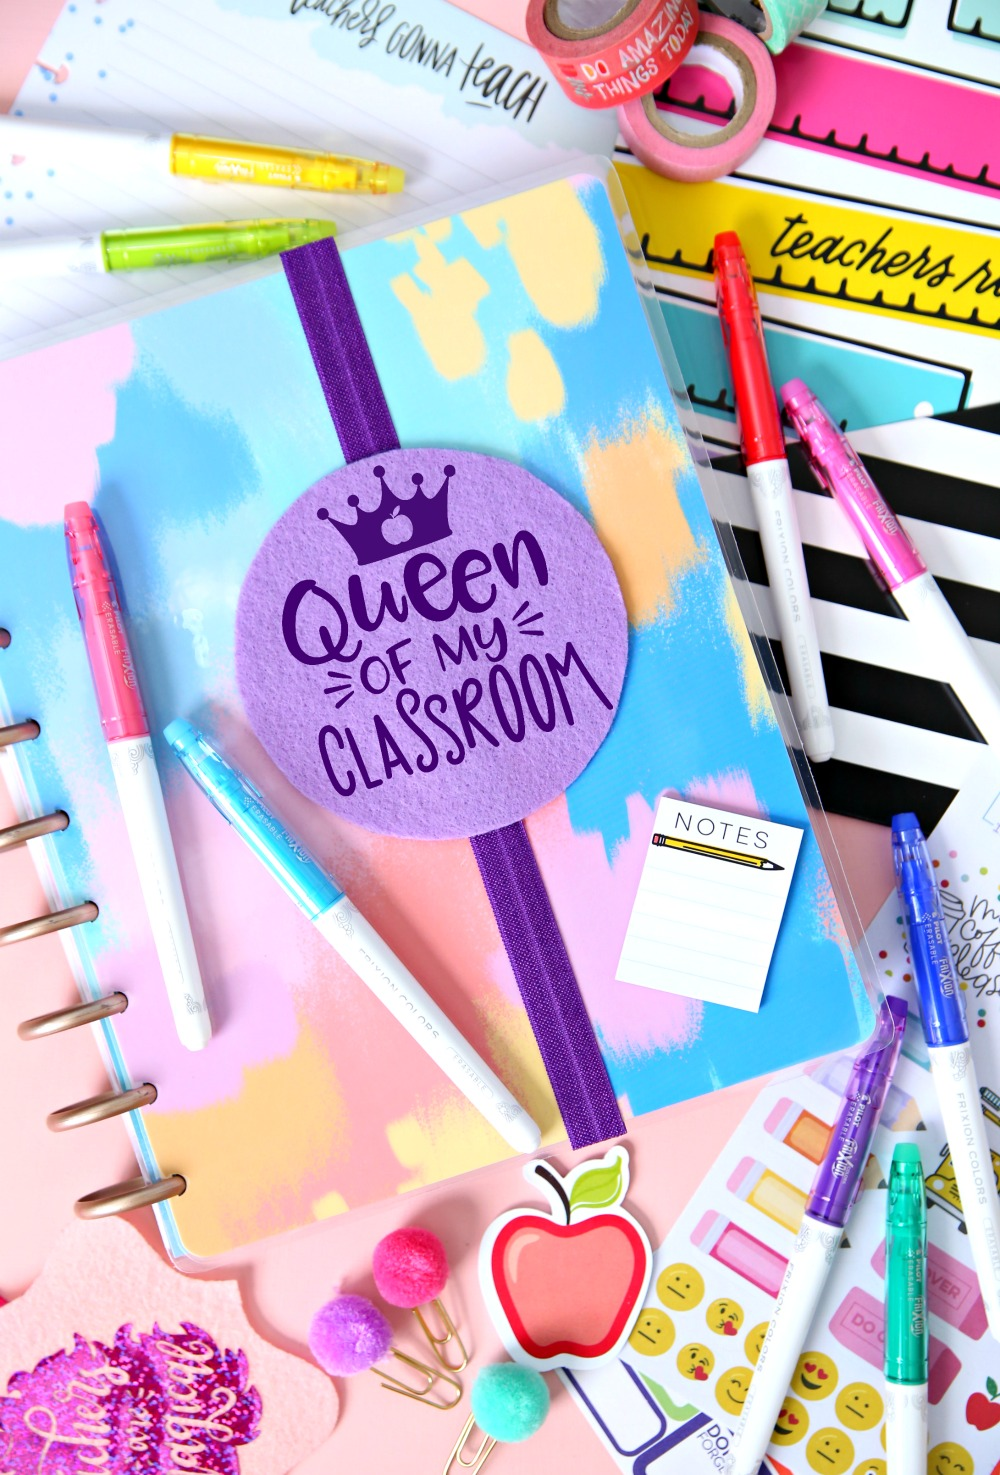 Planner Bookmark Queen of My Classroom - Elastic Bookmarks - Every teacher needs a planner and now they can add these cute Planner Bookmarks to make it extra special!